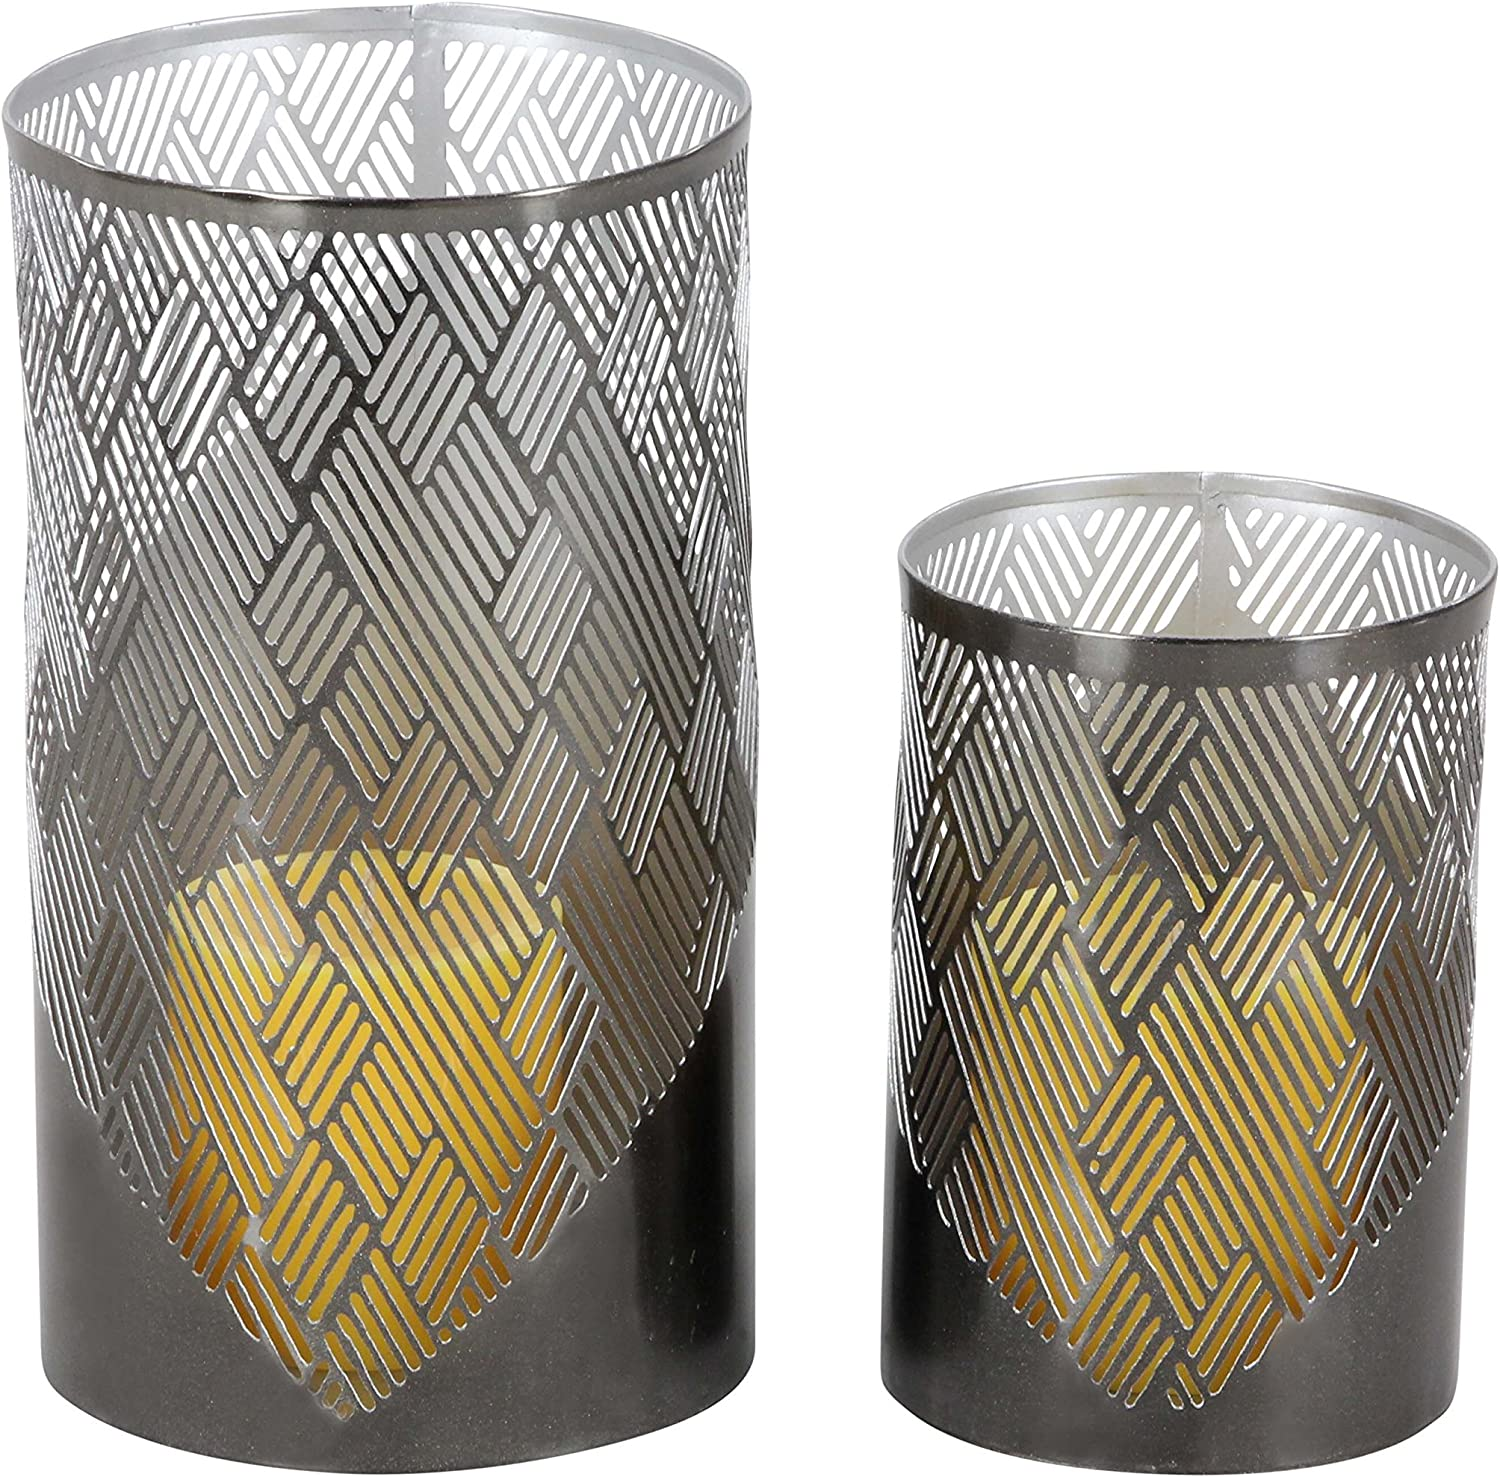 Deco depot 79 57363 Inventory cleanup selling sale Lattice Pattern Cylindrical Candle Holders 9 x 6